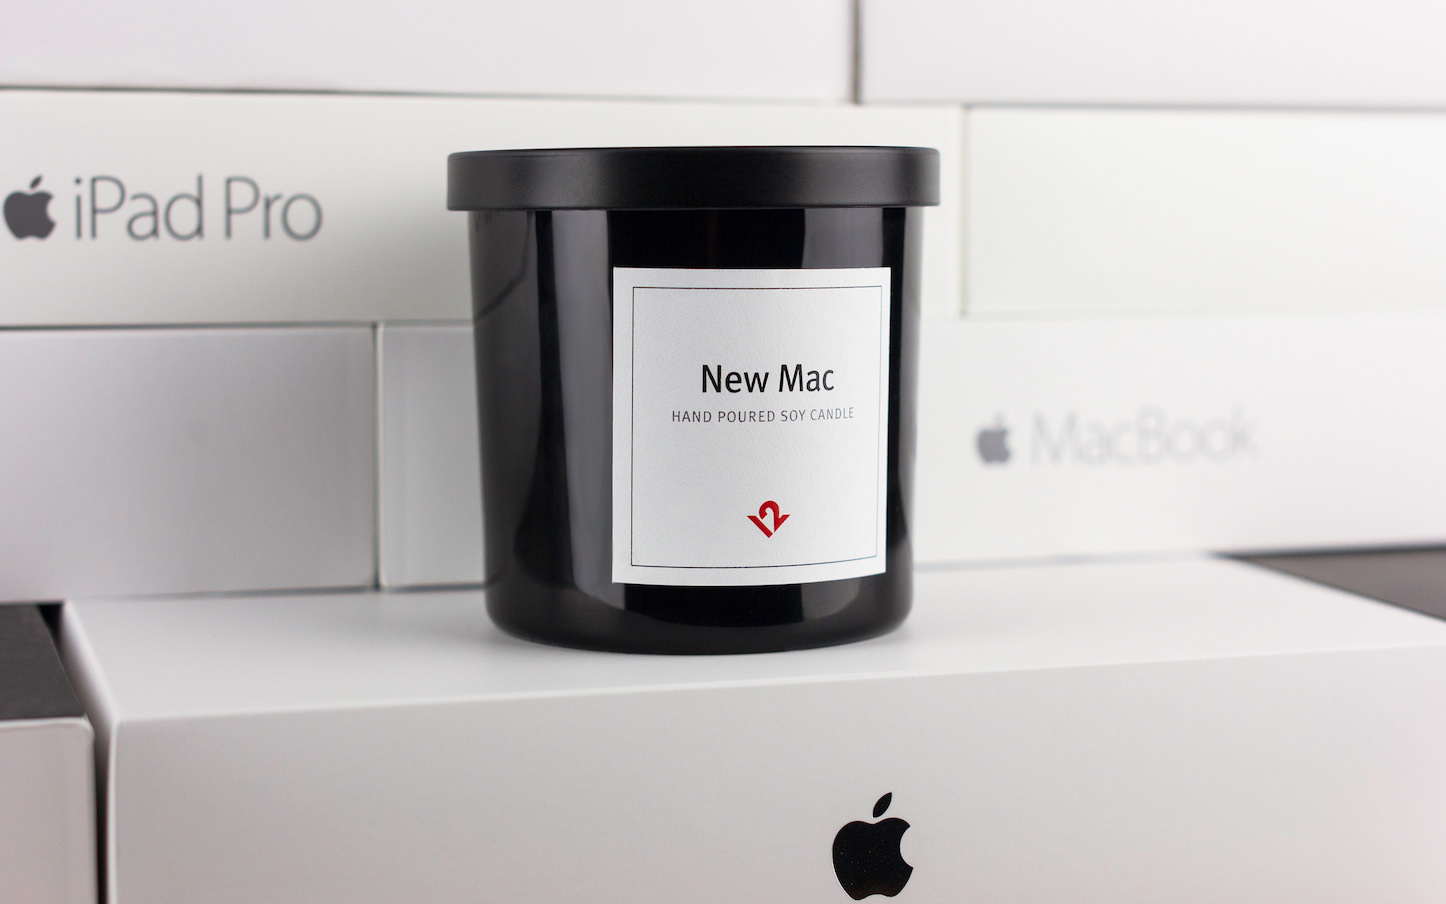 New-Mac-Hand-Poured-Soy-Candle-2.jpg